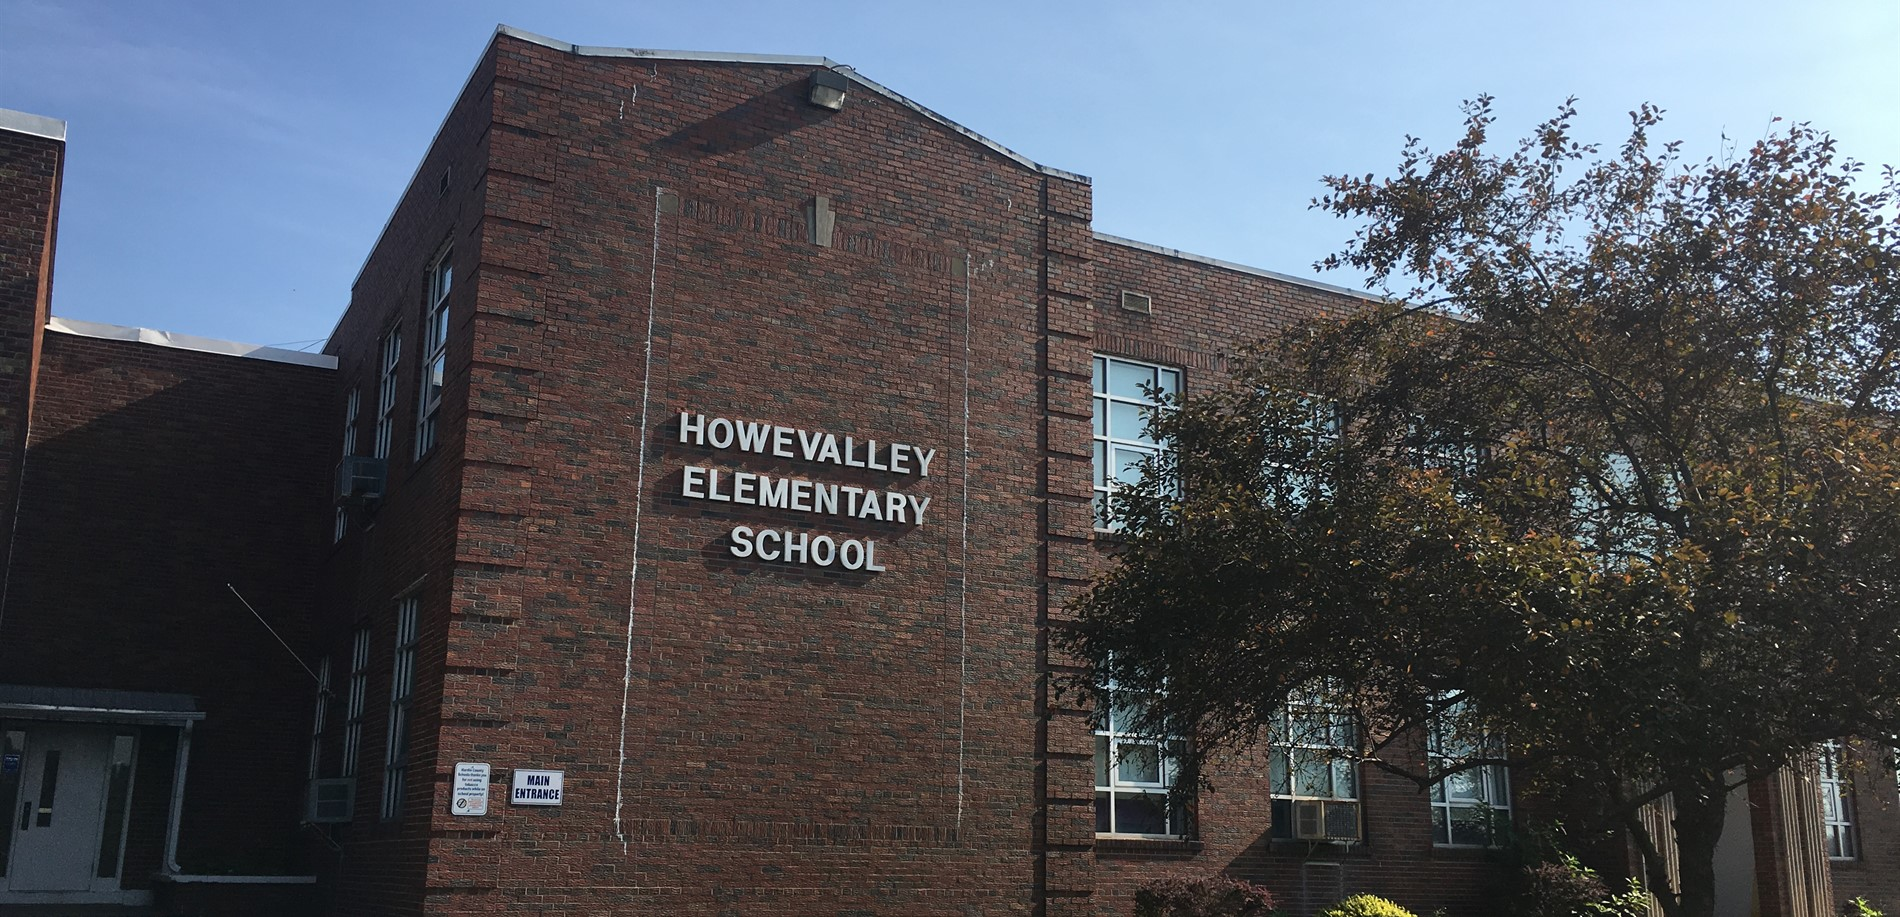 Howevalley Elementary School